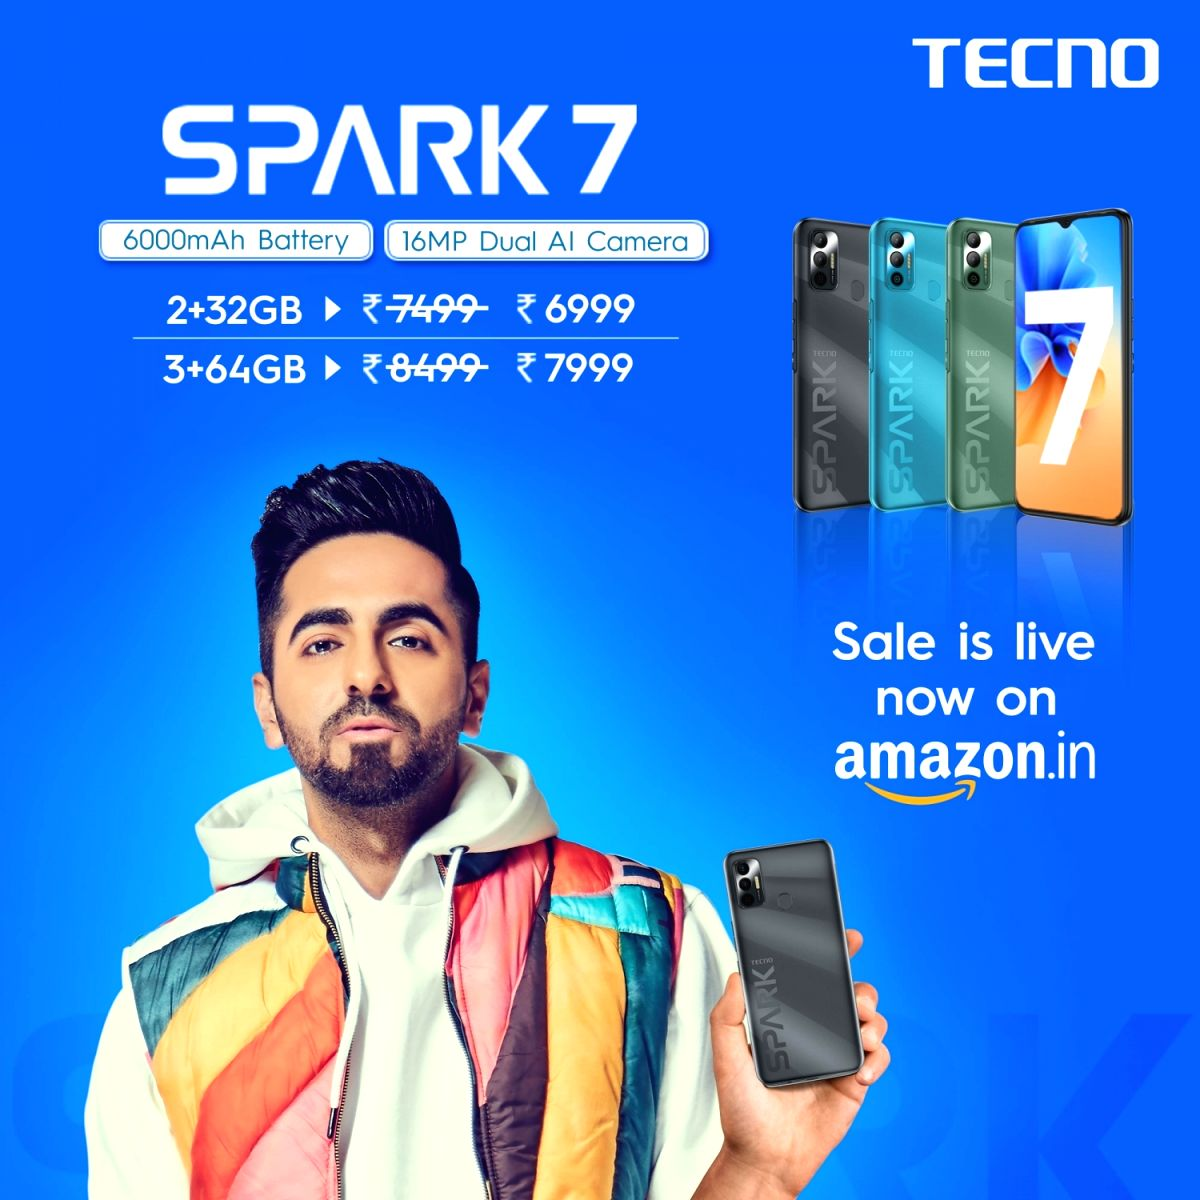 TECNO SPARK 7 goes live for sale on Amazon.